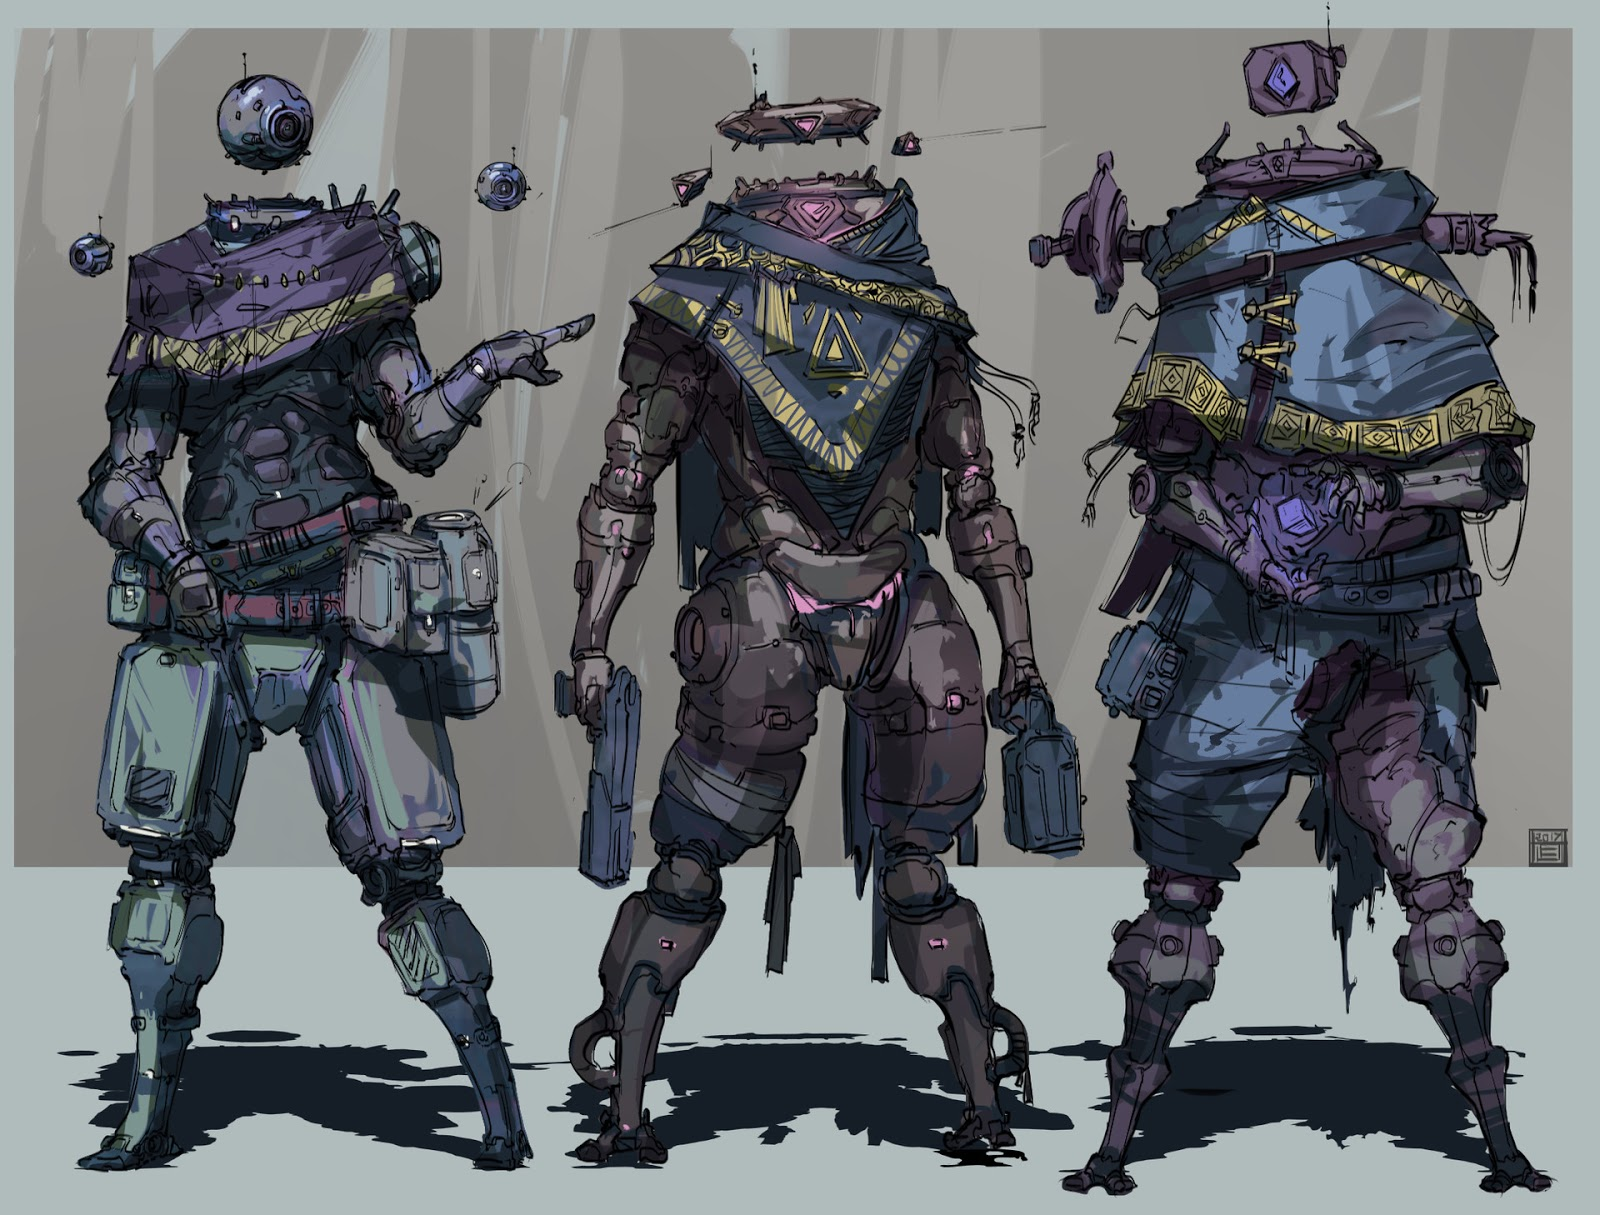 Images: A Collection Of Sci-Fi Concept Art From Hue Teo